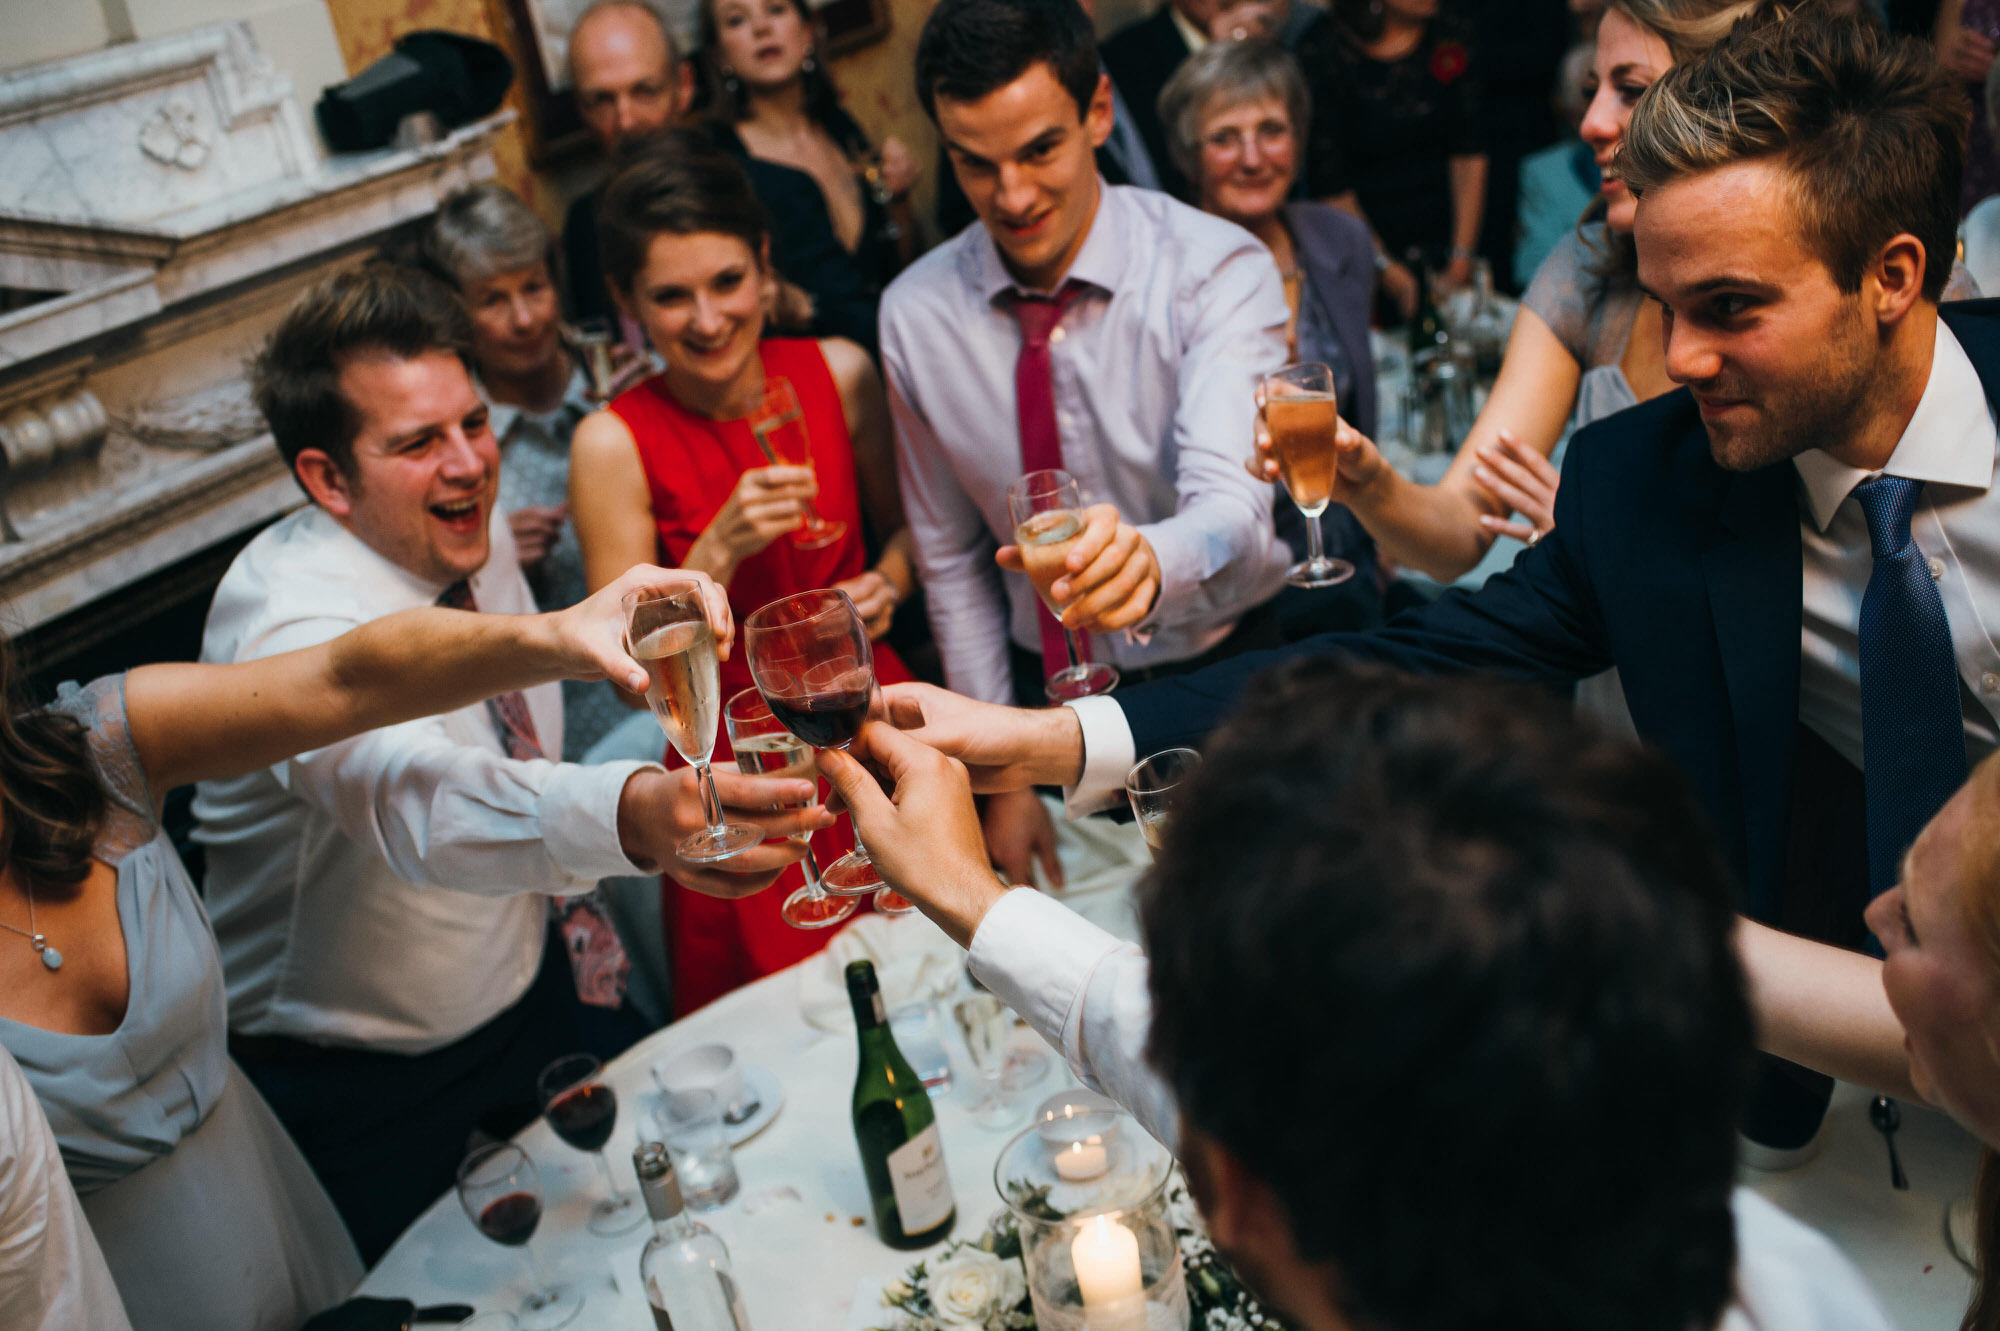 Crowcombe court wedding drinks